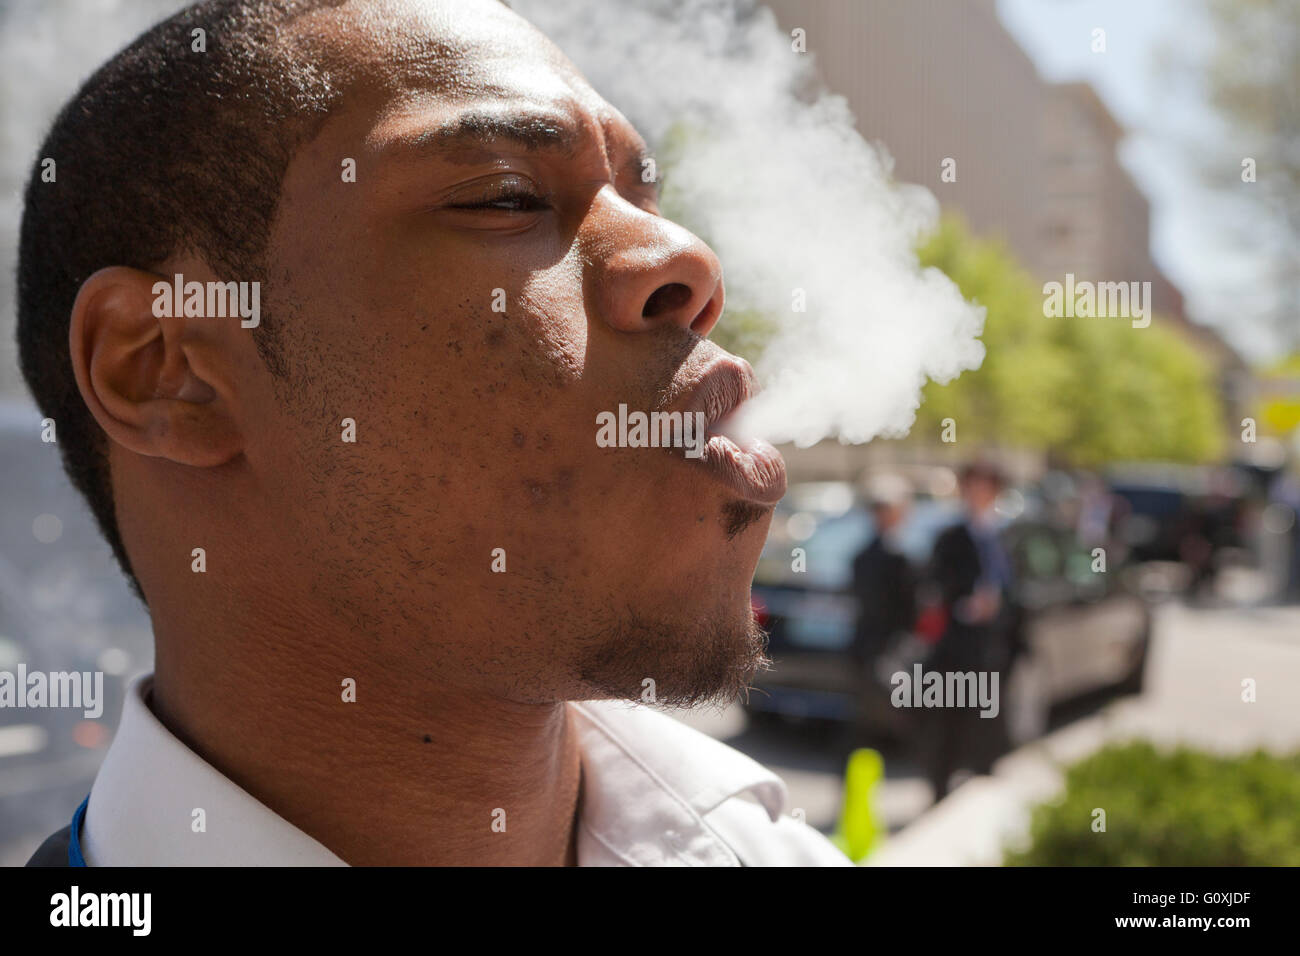 Young African-American man blowing vapor - USA - Stock Image